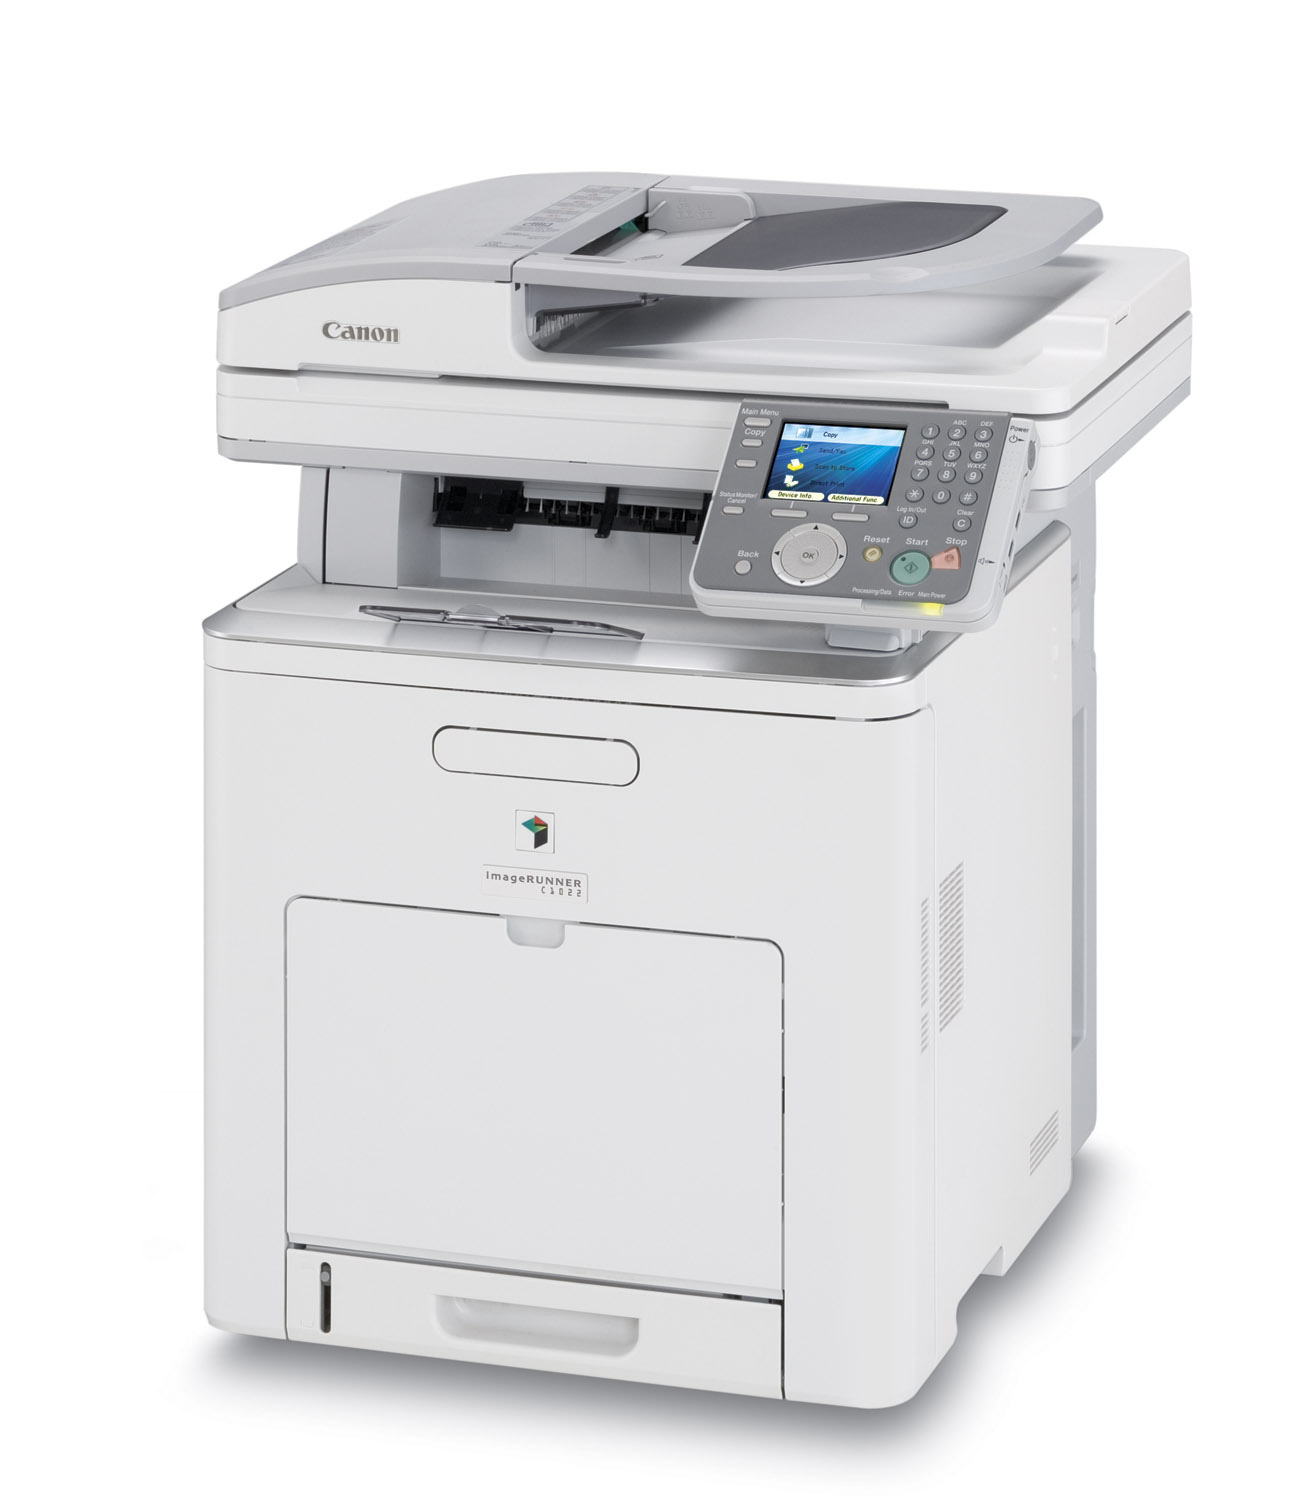 how to add printer manually canon imagerunner